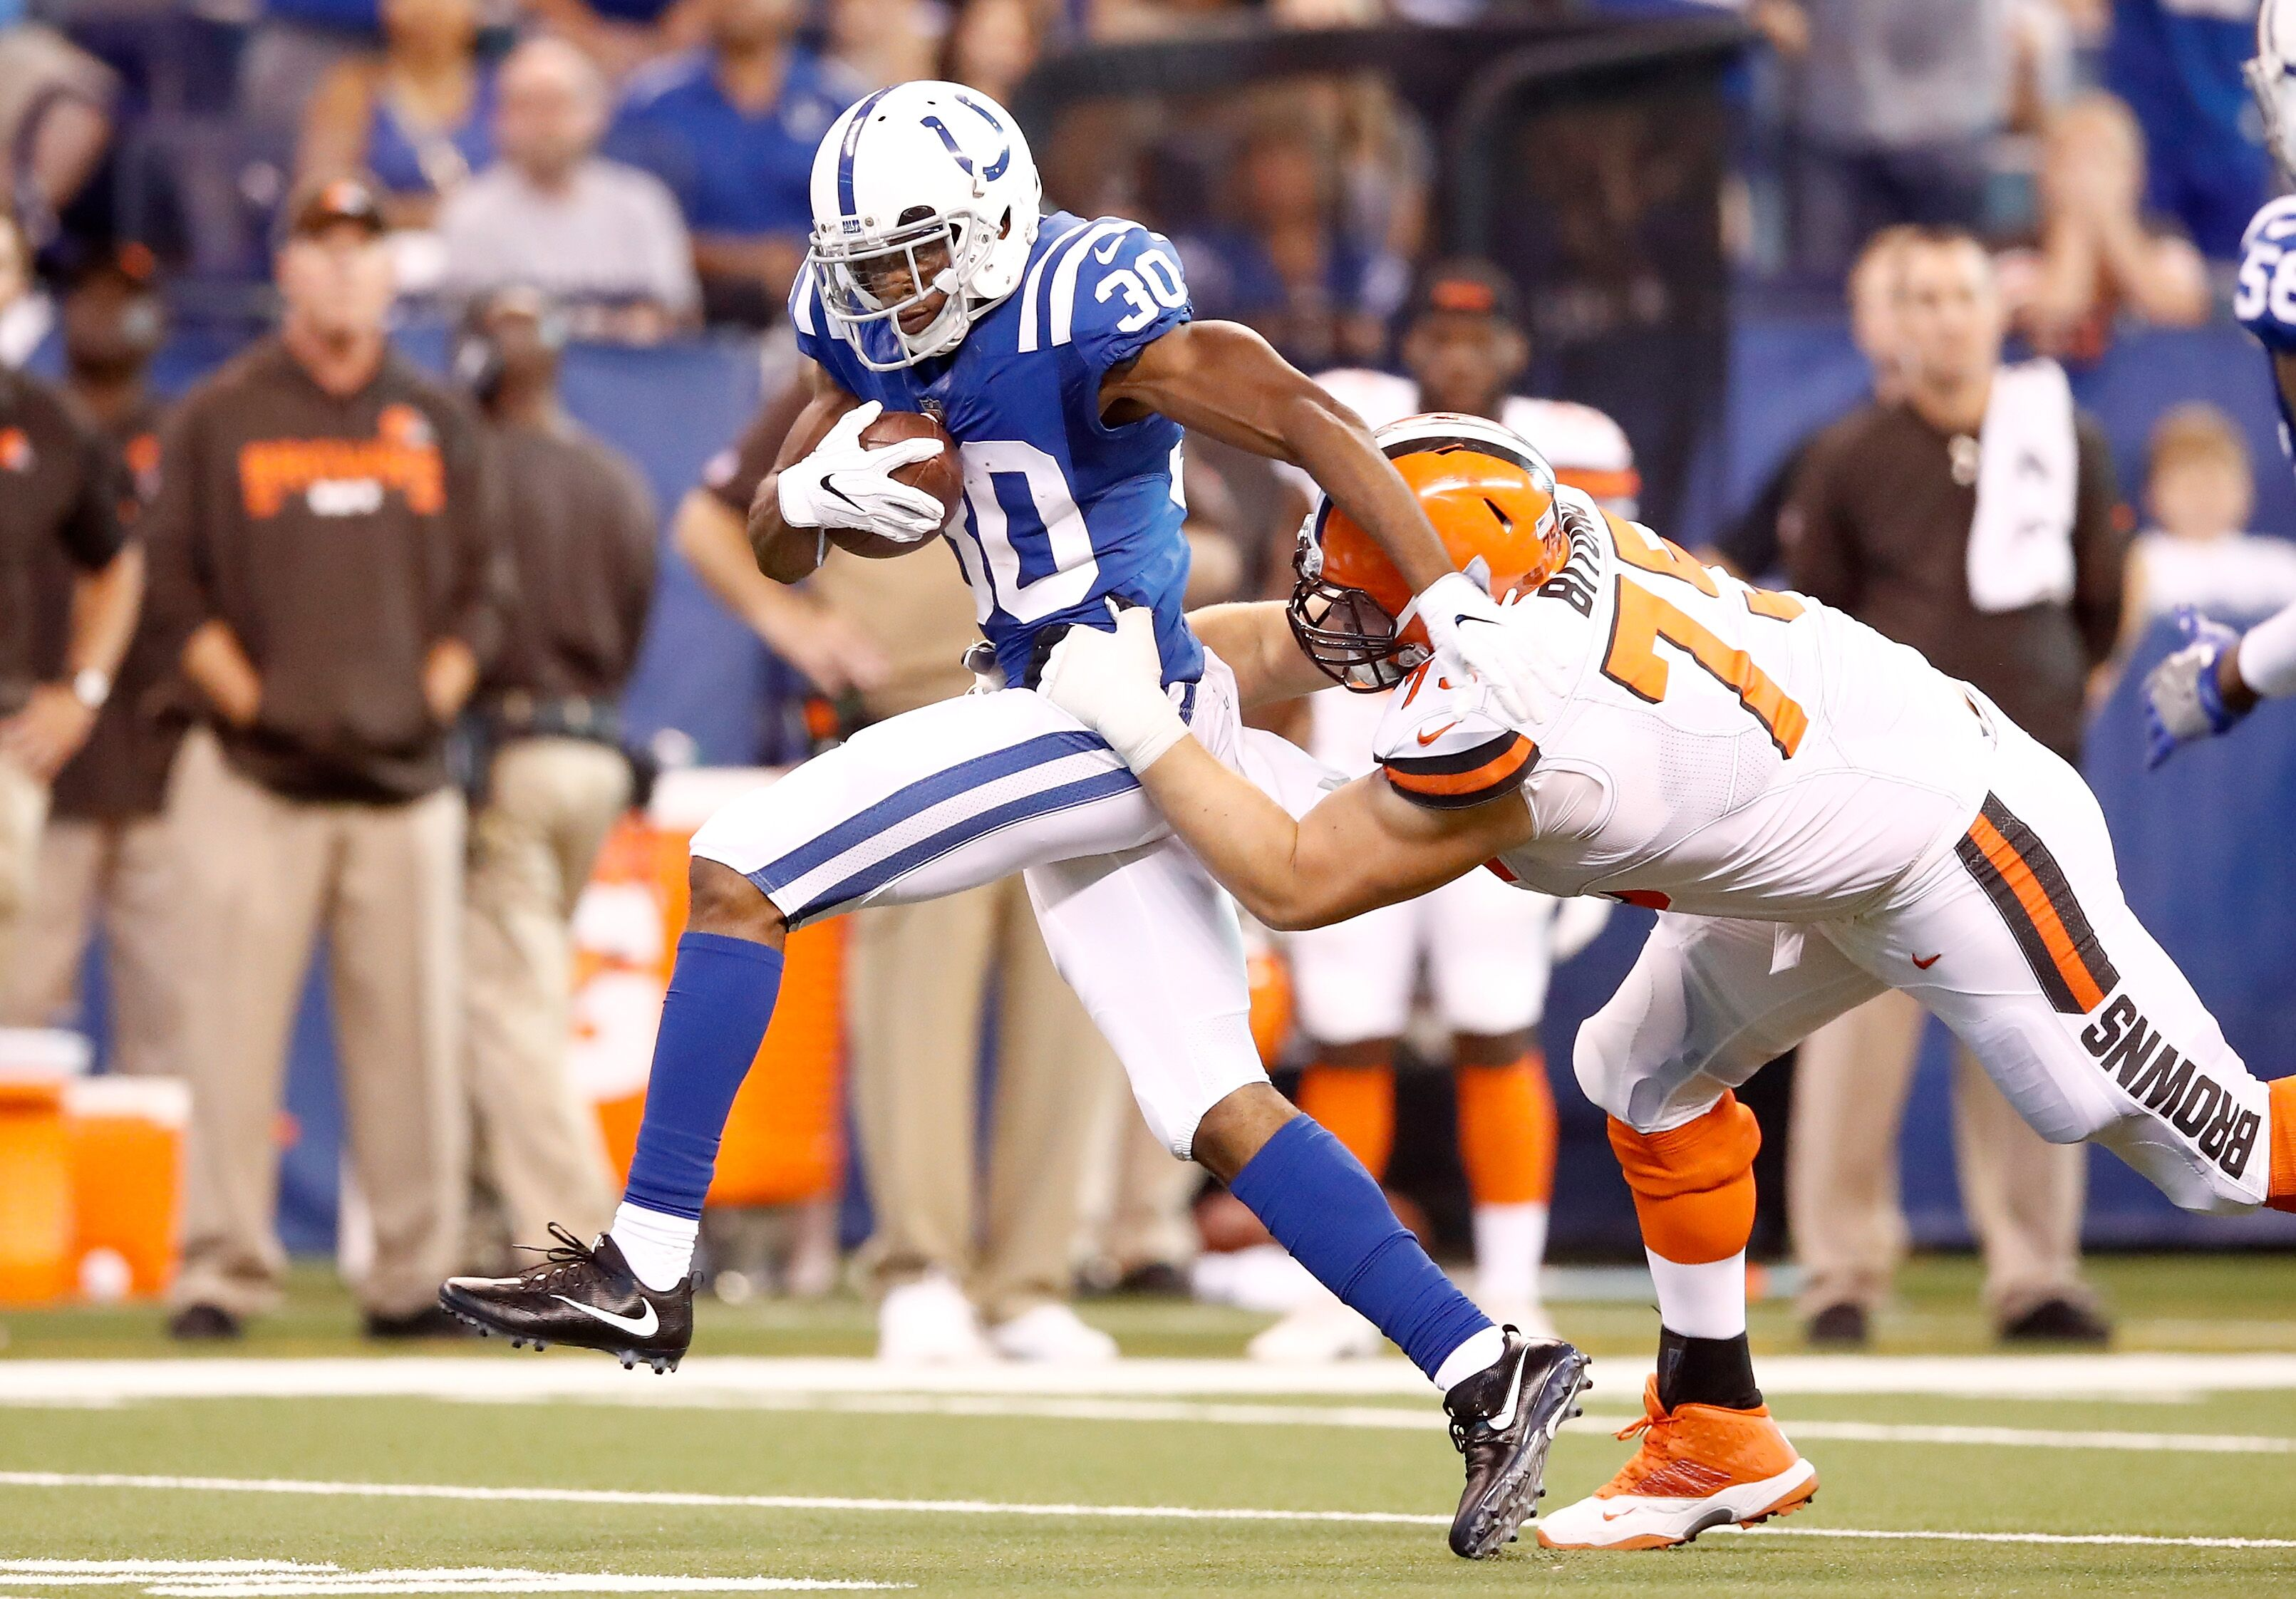 853162150-cleveland-browns-v-indianapolis-colts.jpg